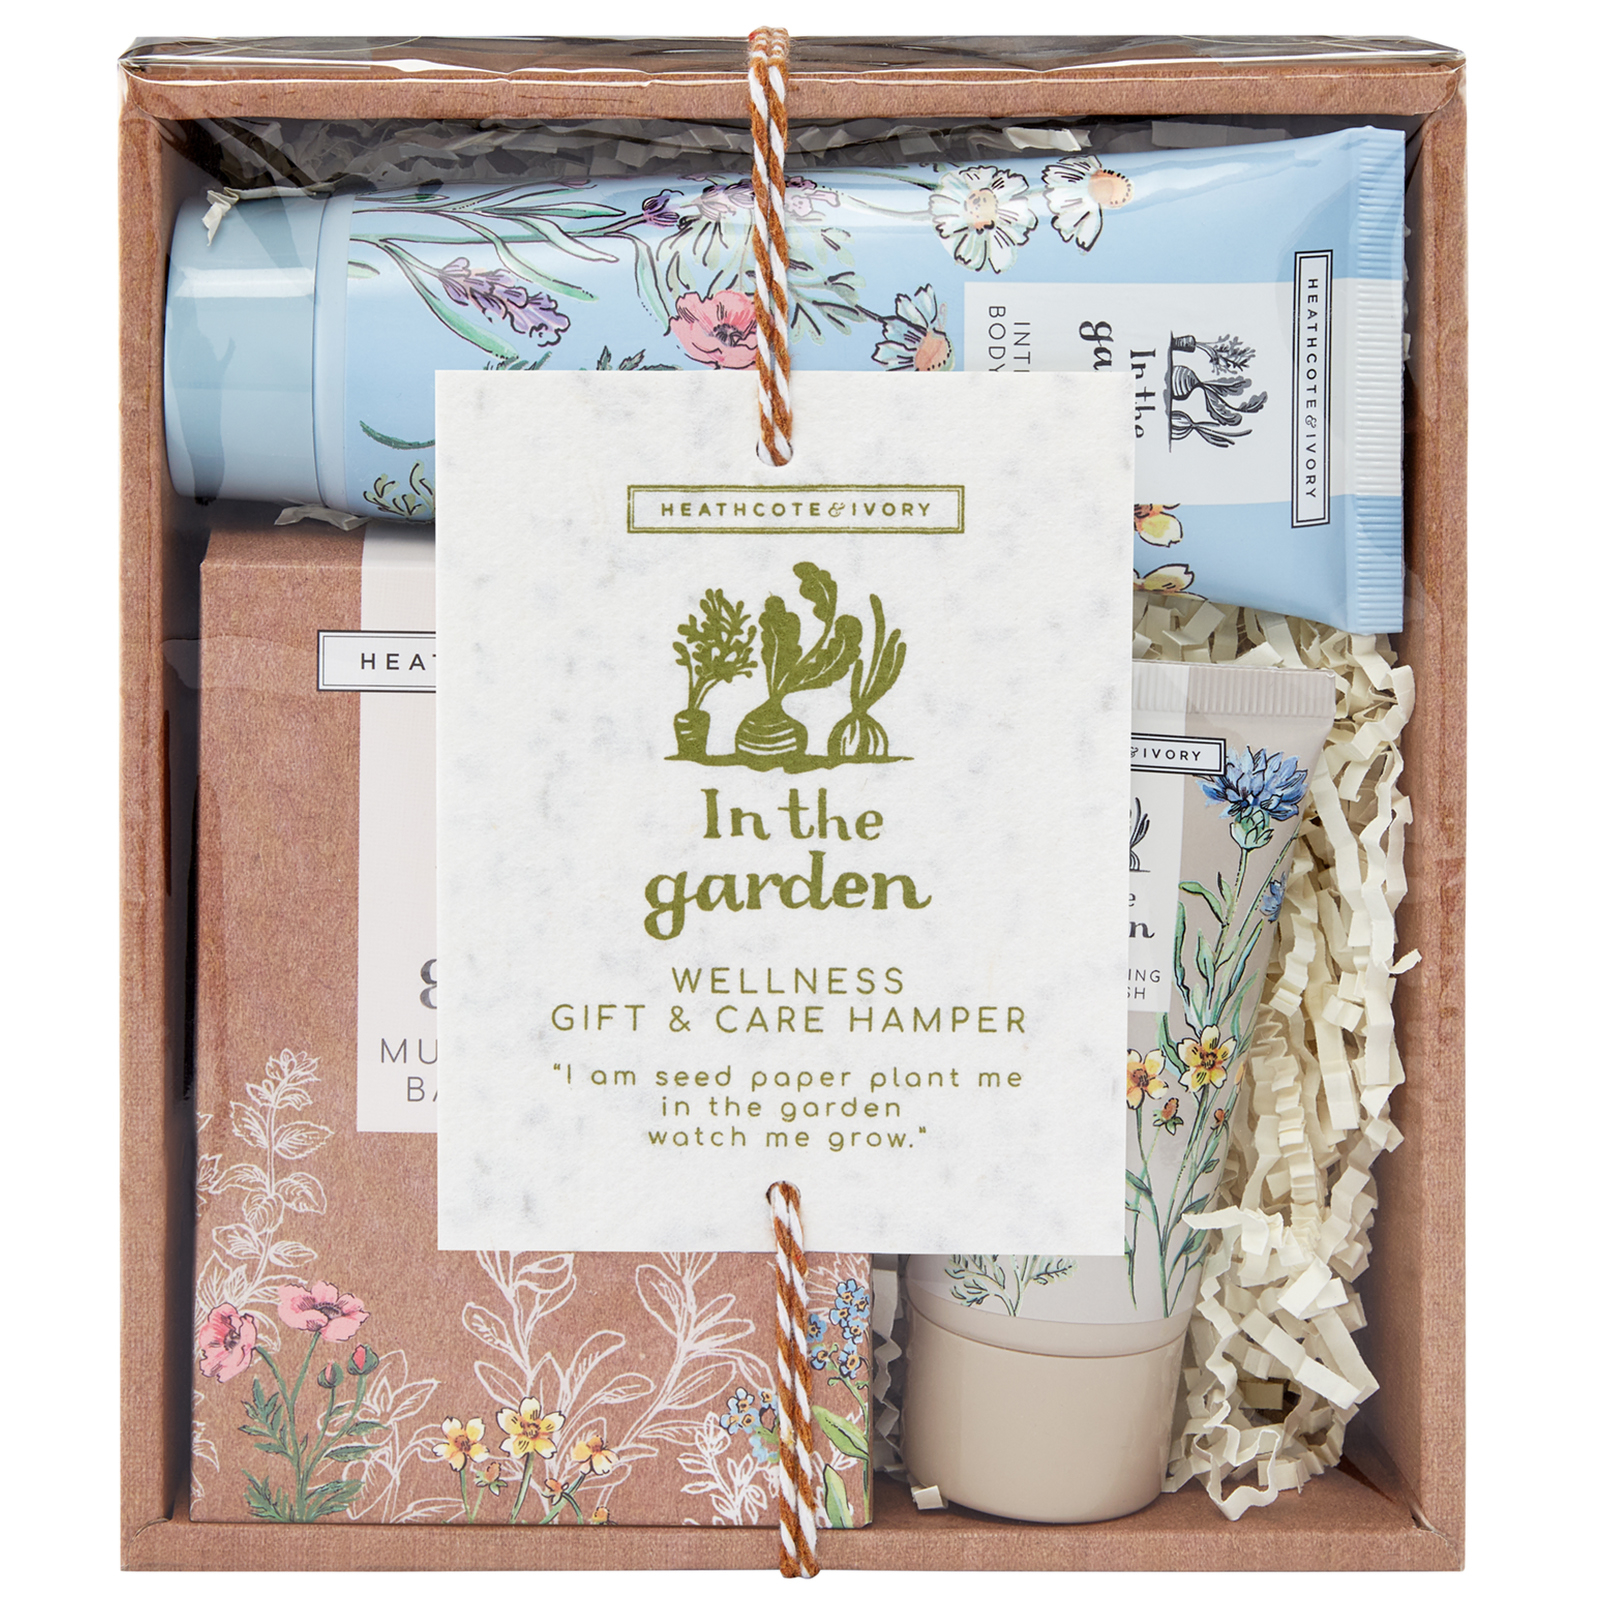 Heathcote & Ivory In The Garden Wellness Gift & Care Hamper